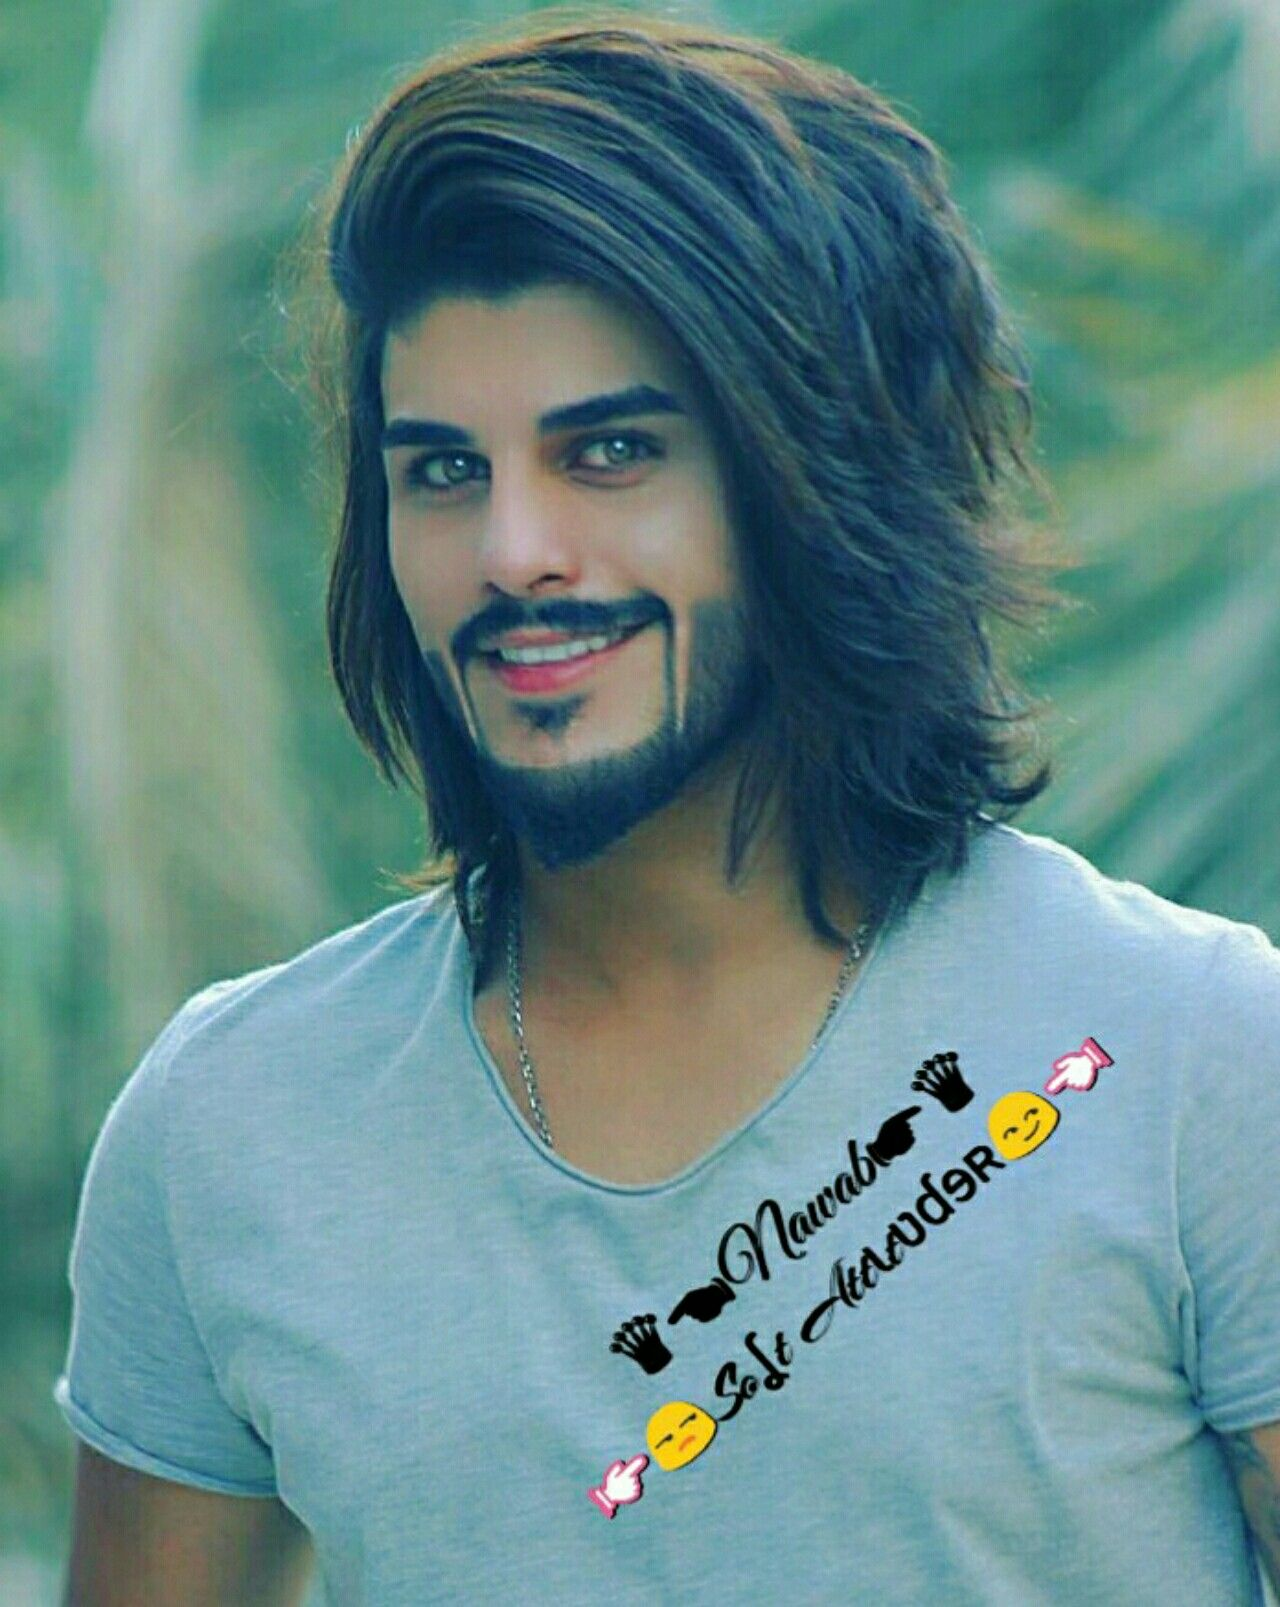 Muslim Fashion Boys Long Hairstyles Boy Hairstyles Mens Hairstyles With Beard